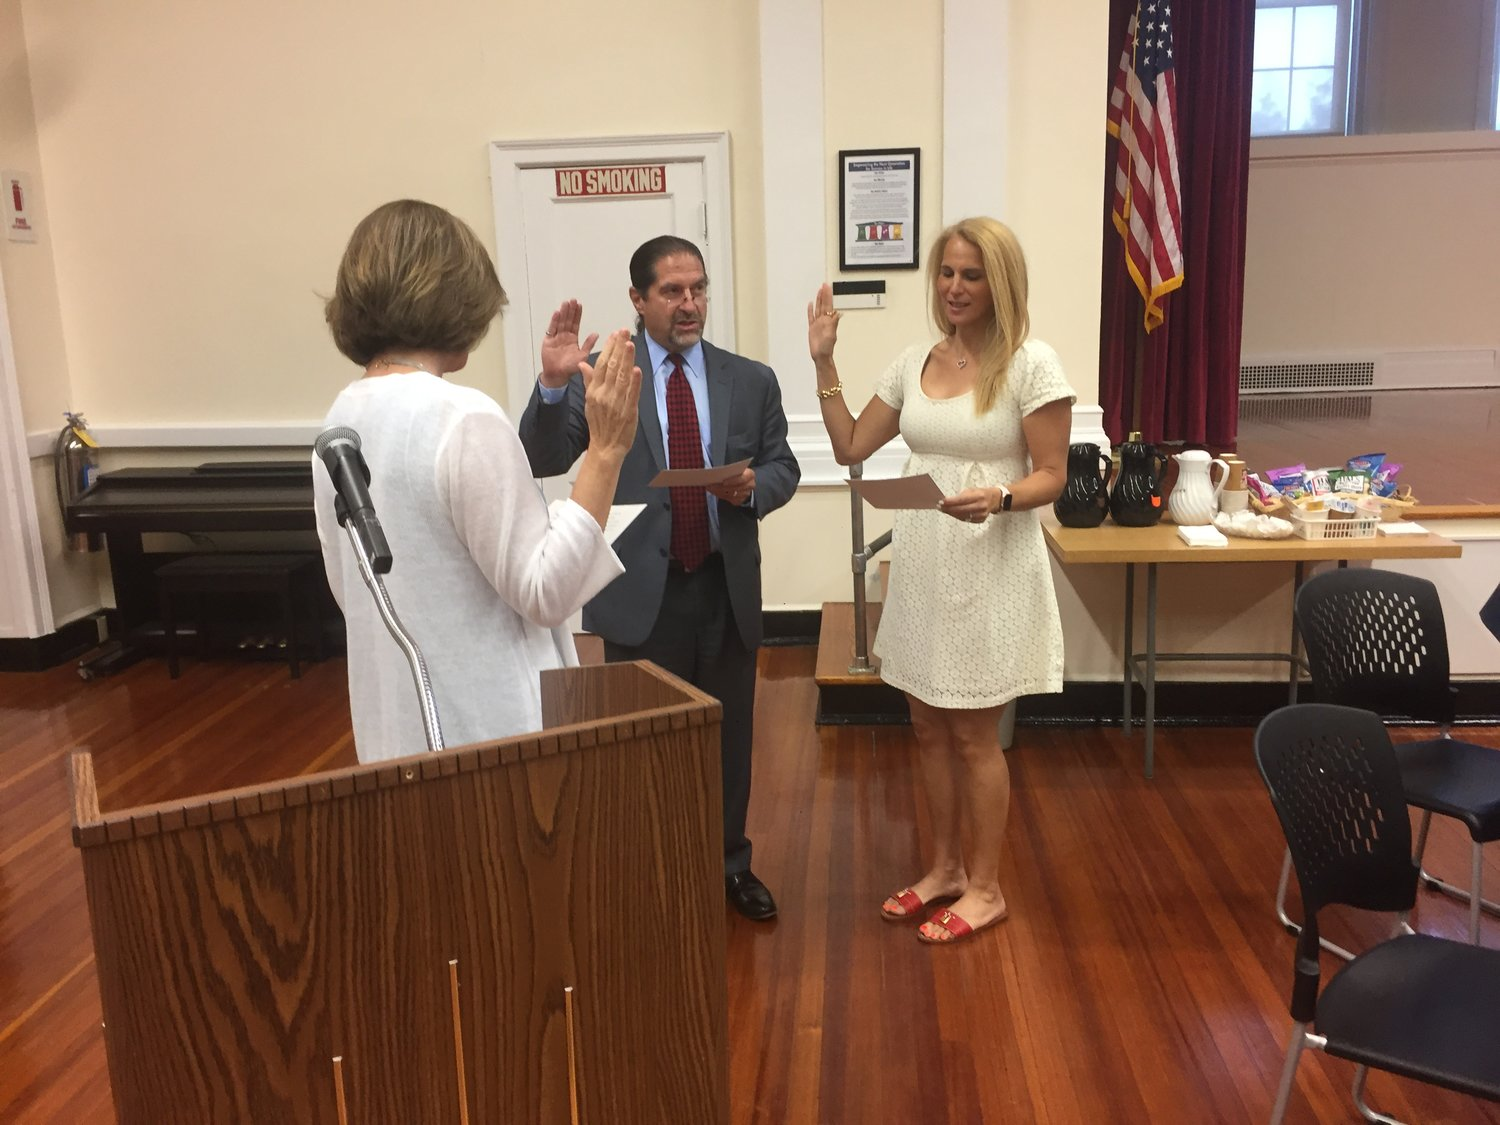 Hewlett-Woodmere Board of Education President Mitchell Greebel and Trustee Daniella Simon were sworn in for fresh three-year terms at the reorganization meeting on July 2.